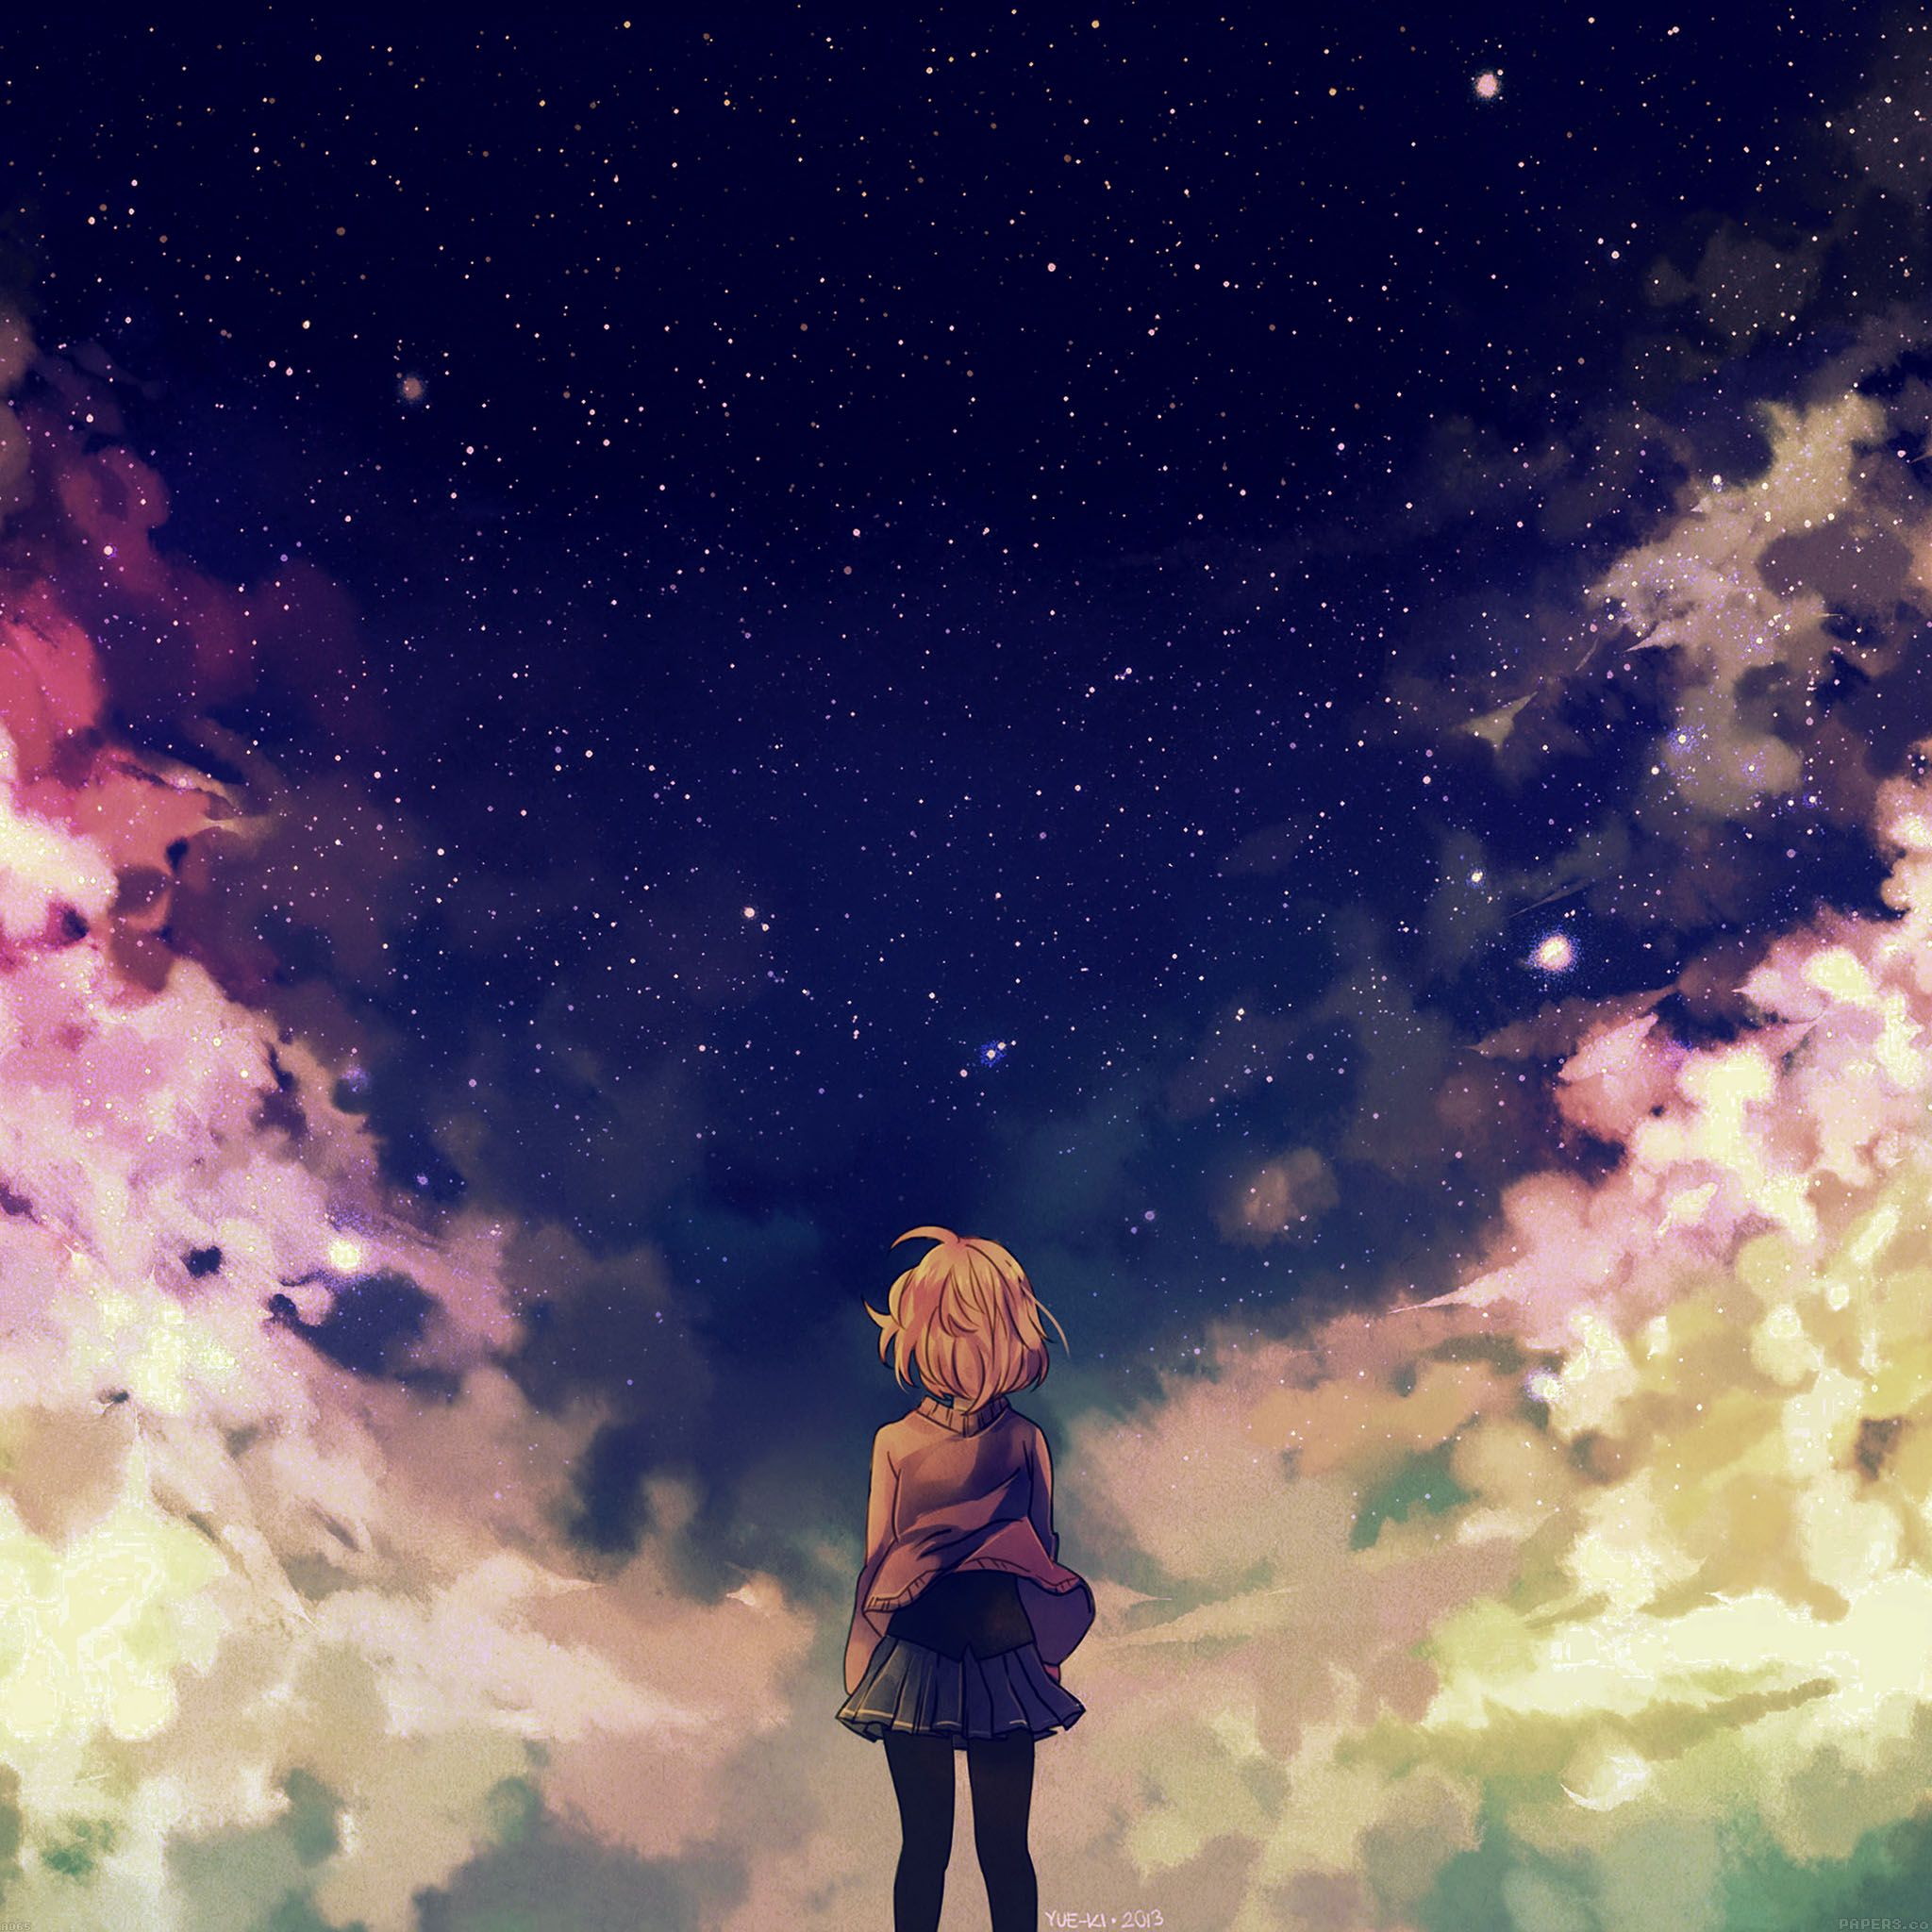 Galaxy Girl Anime Wallpapers Wallpaper Cave